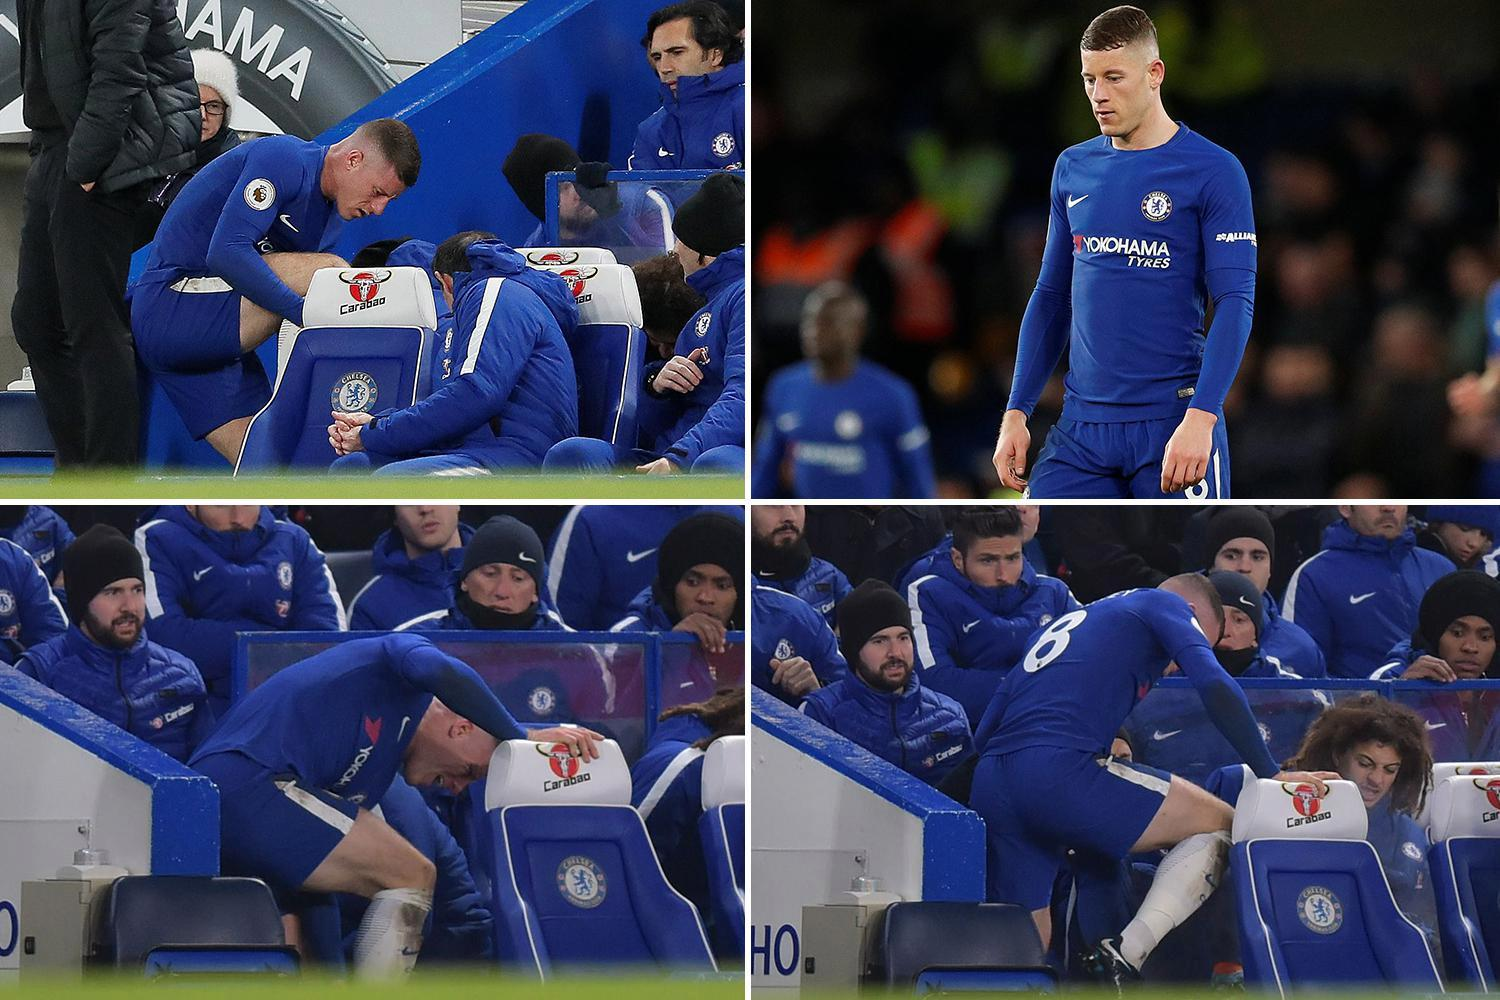 Ross Barkley appears to injured himself on the BENCH after being subbed during Chelsea's shocker against Bournemouth